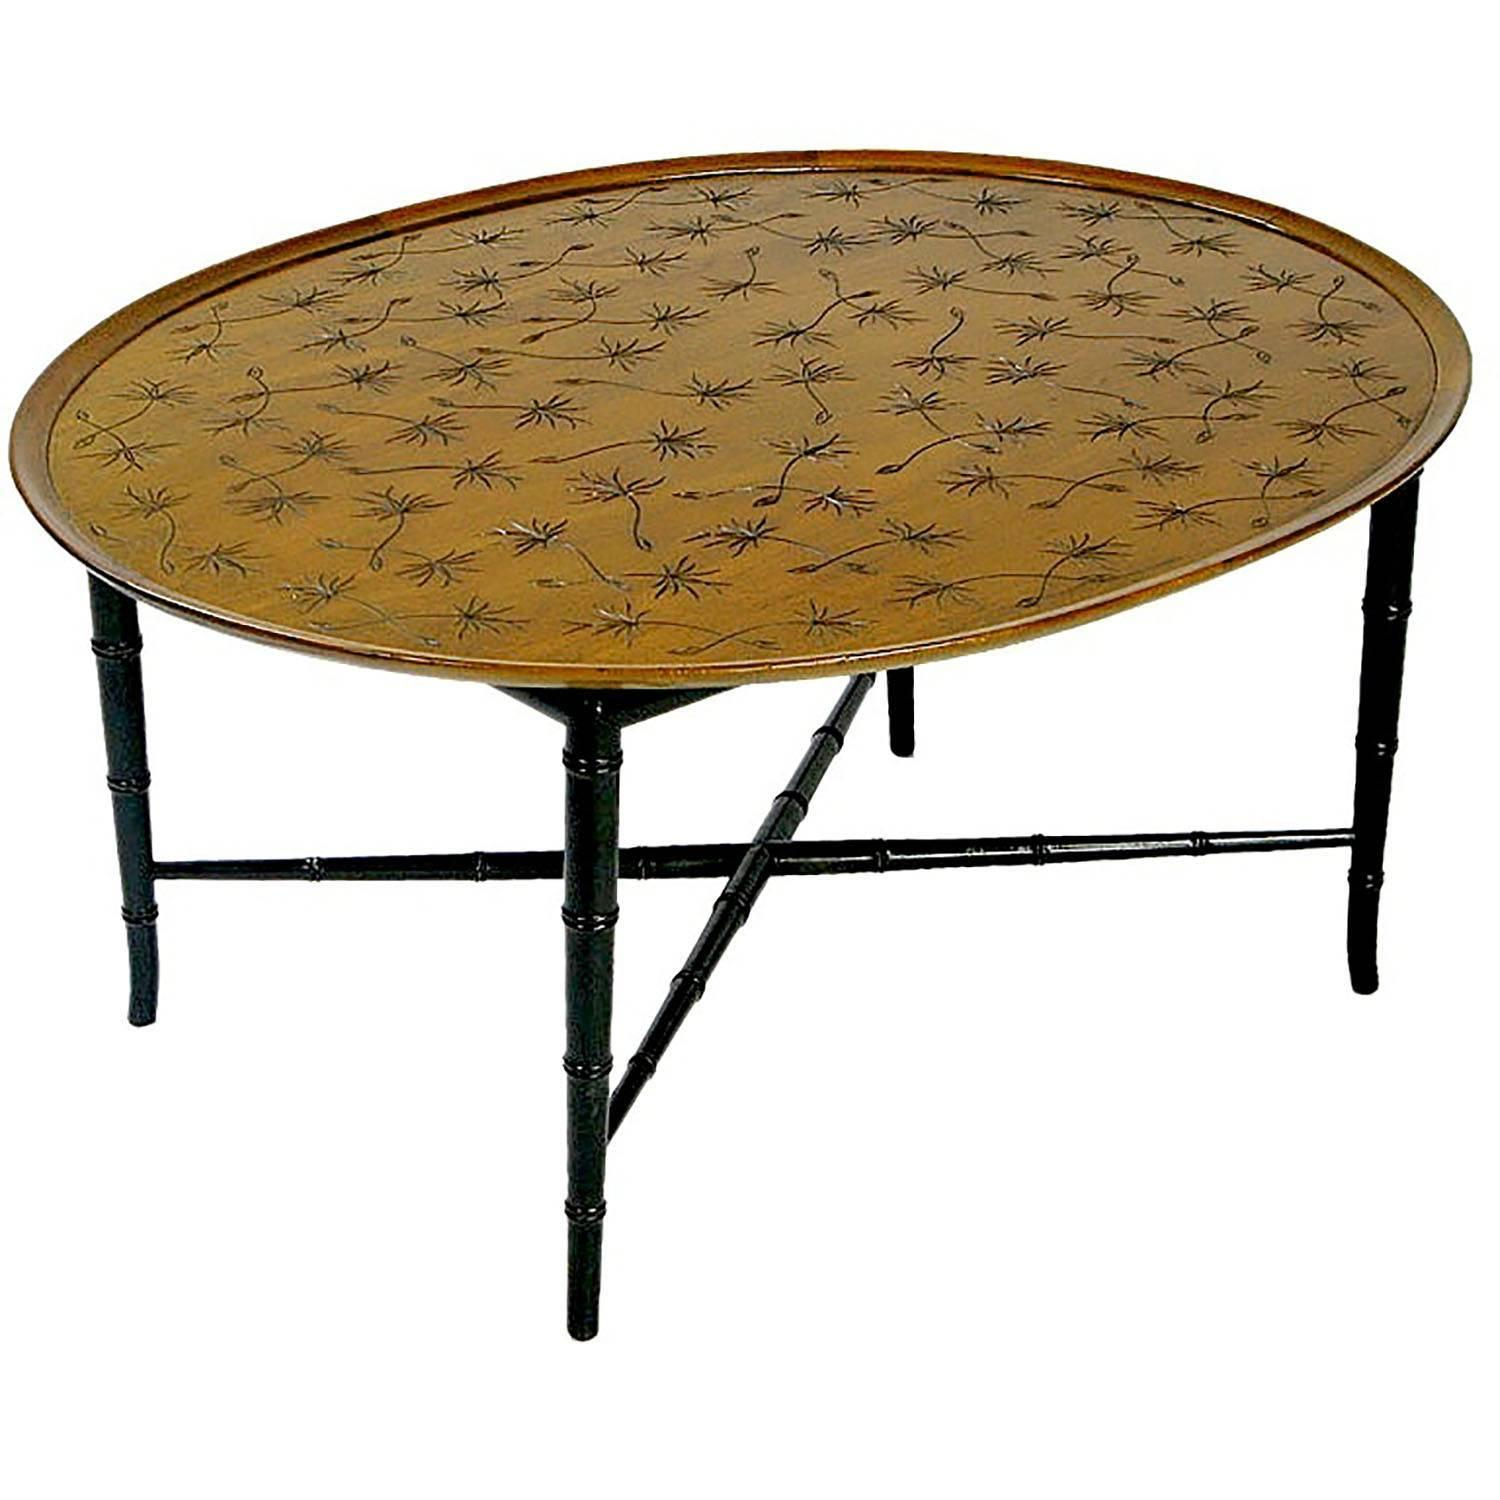 Tray Coffee Table Sale: Kittinger Tray Coffee Table With Incised Thistledown